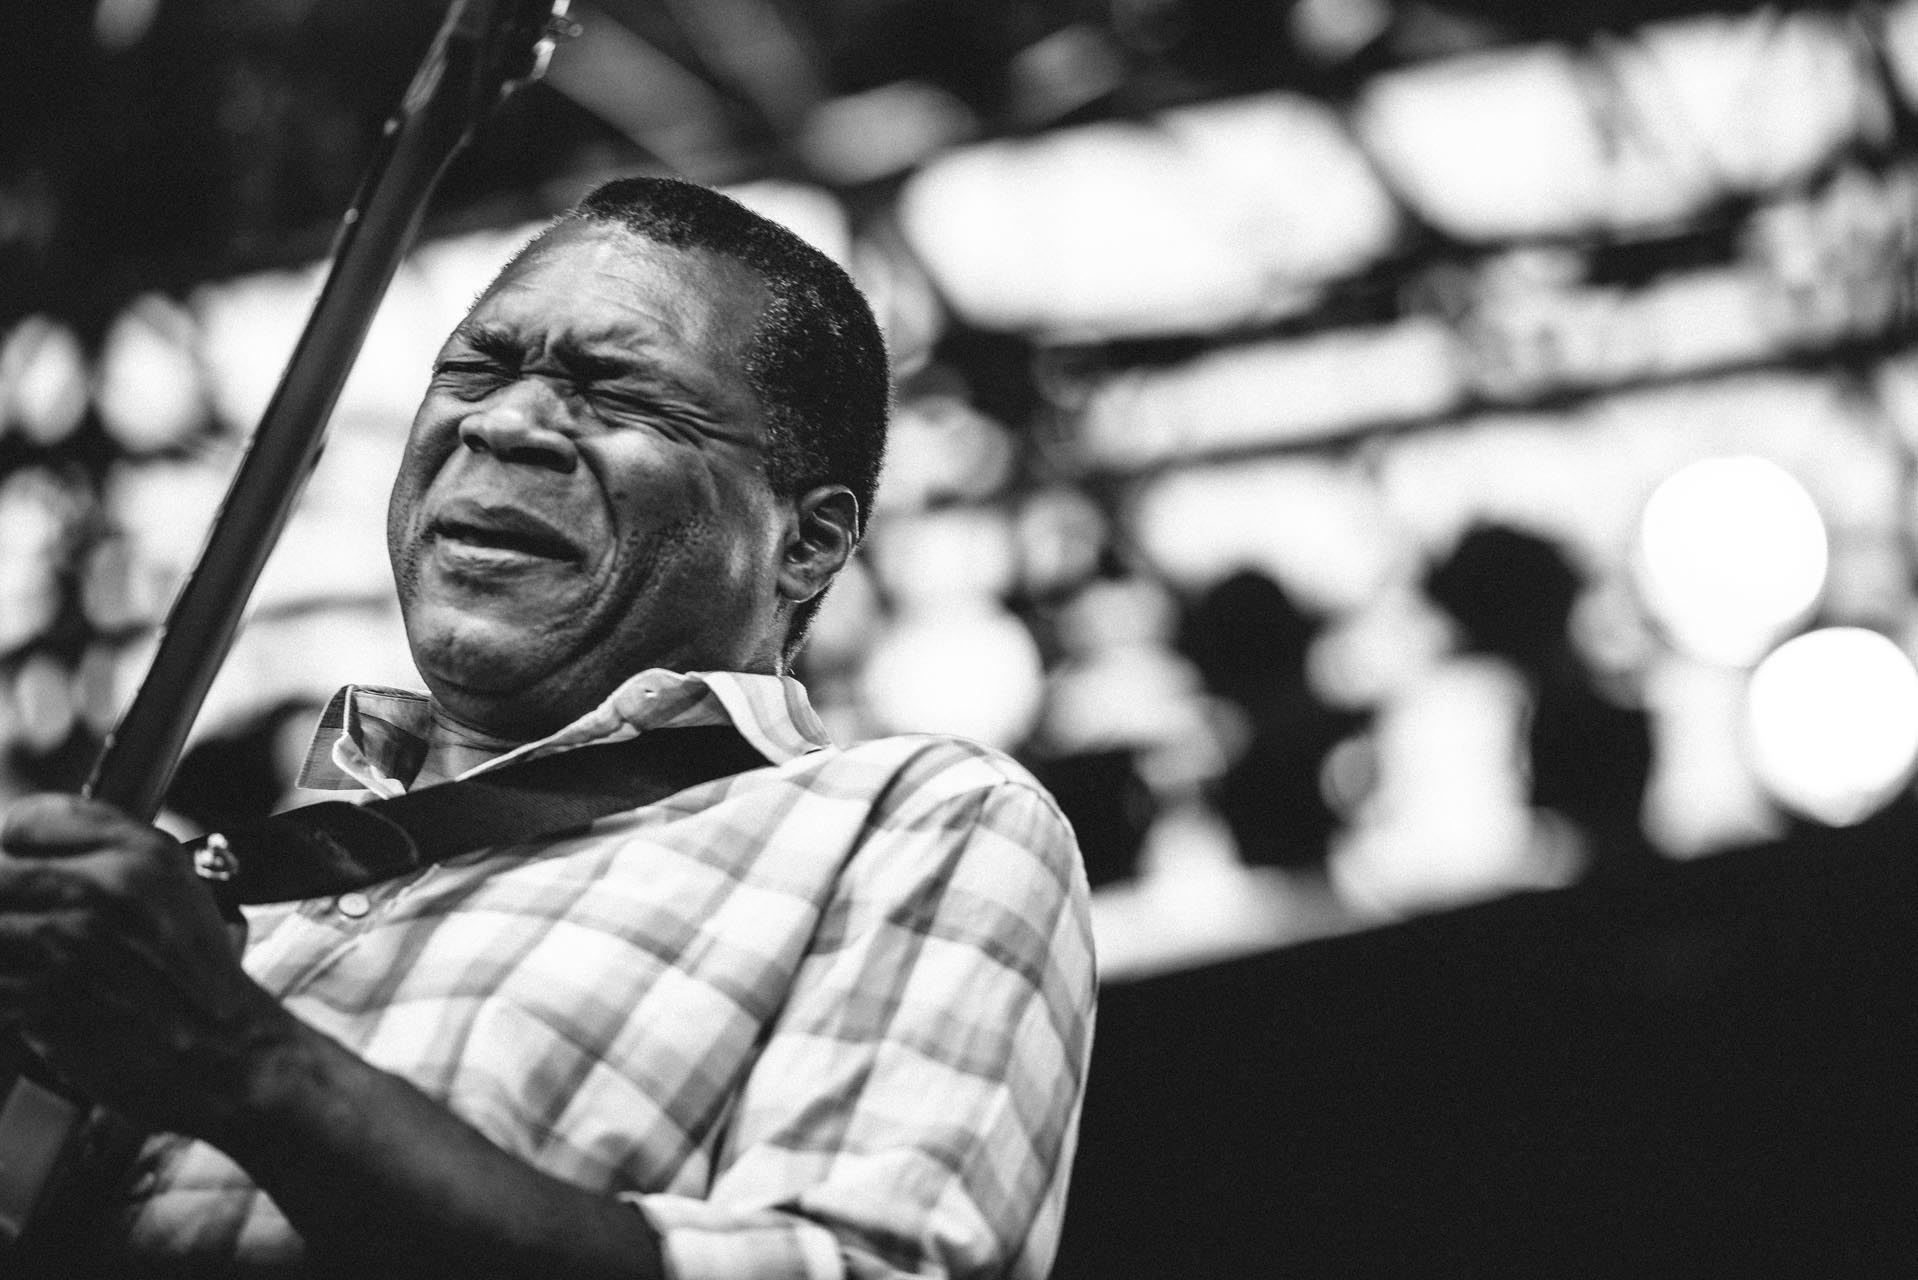 robert_cray_live_the_lawn_indianapolis_2013-21